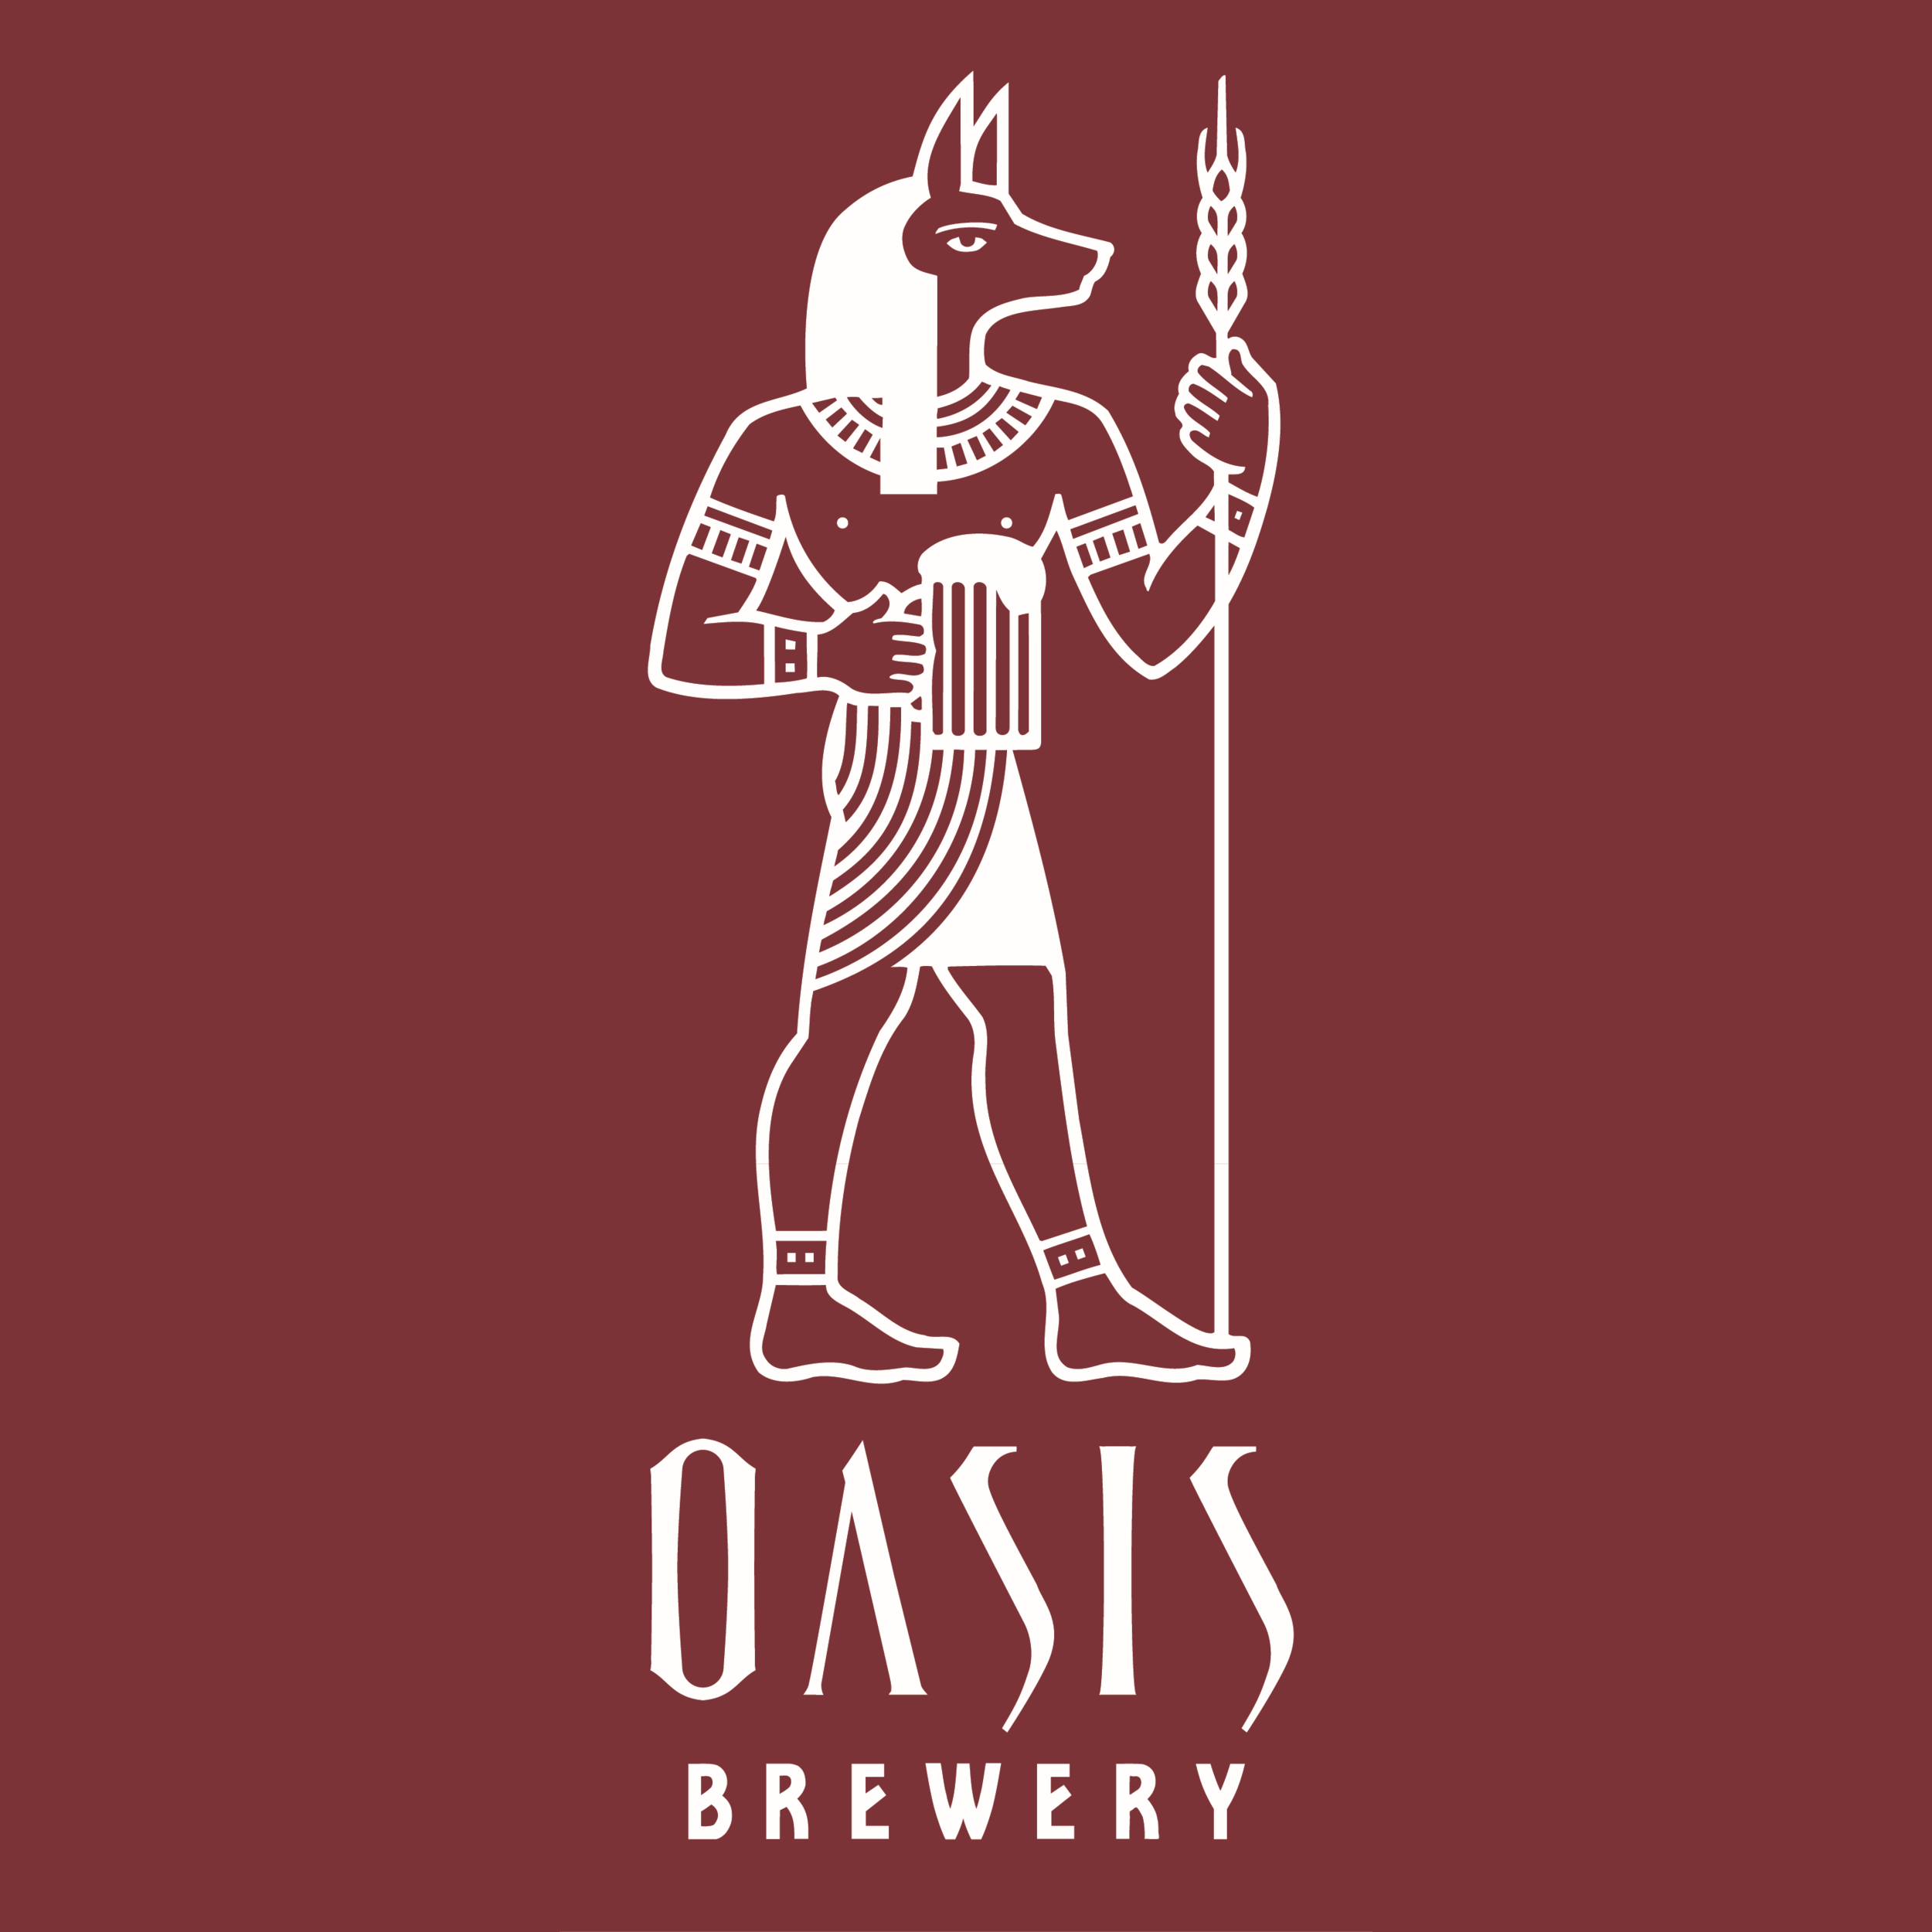 Oasis_Brewing1.png